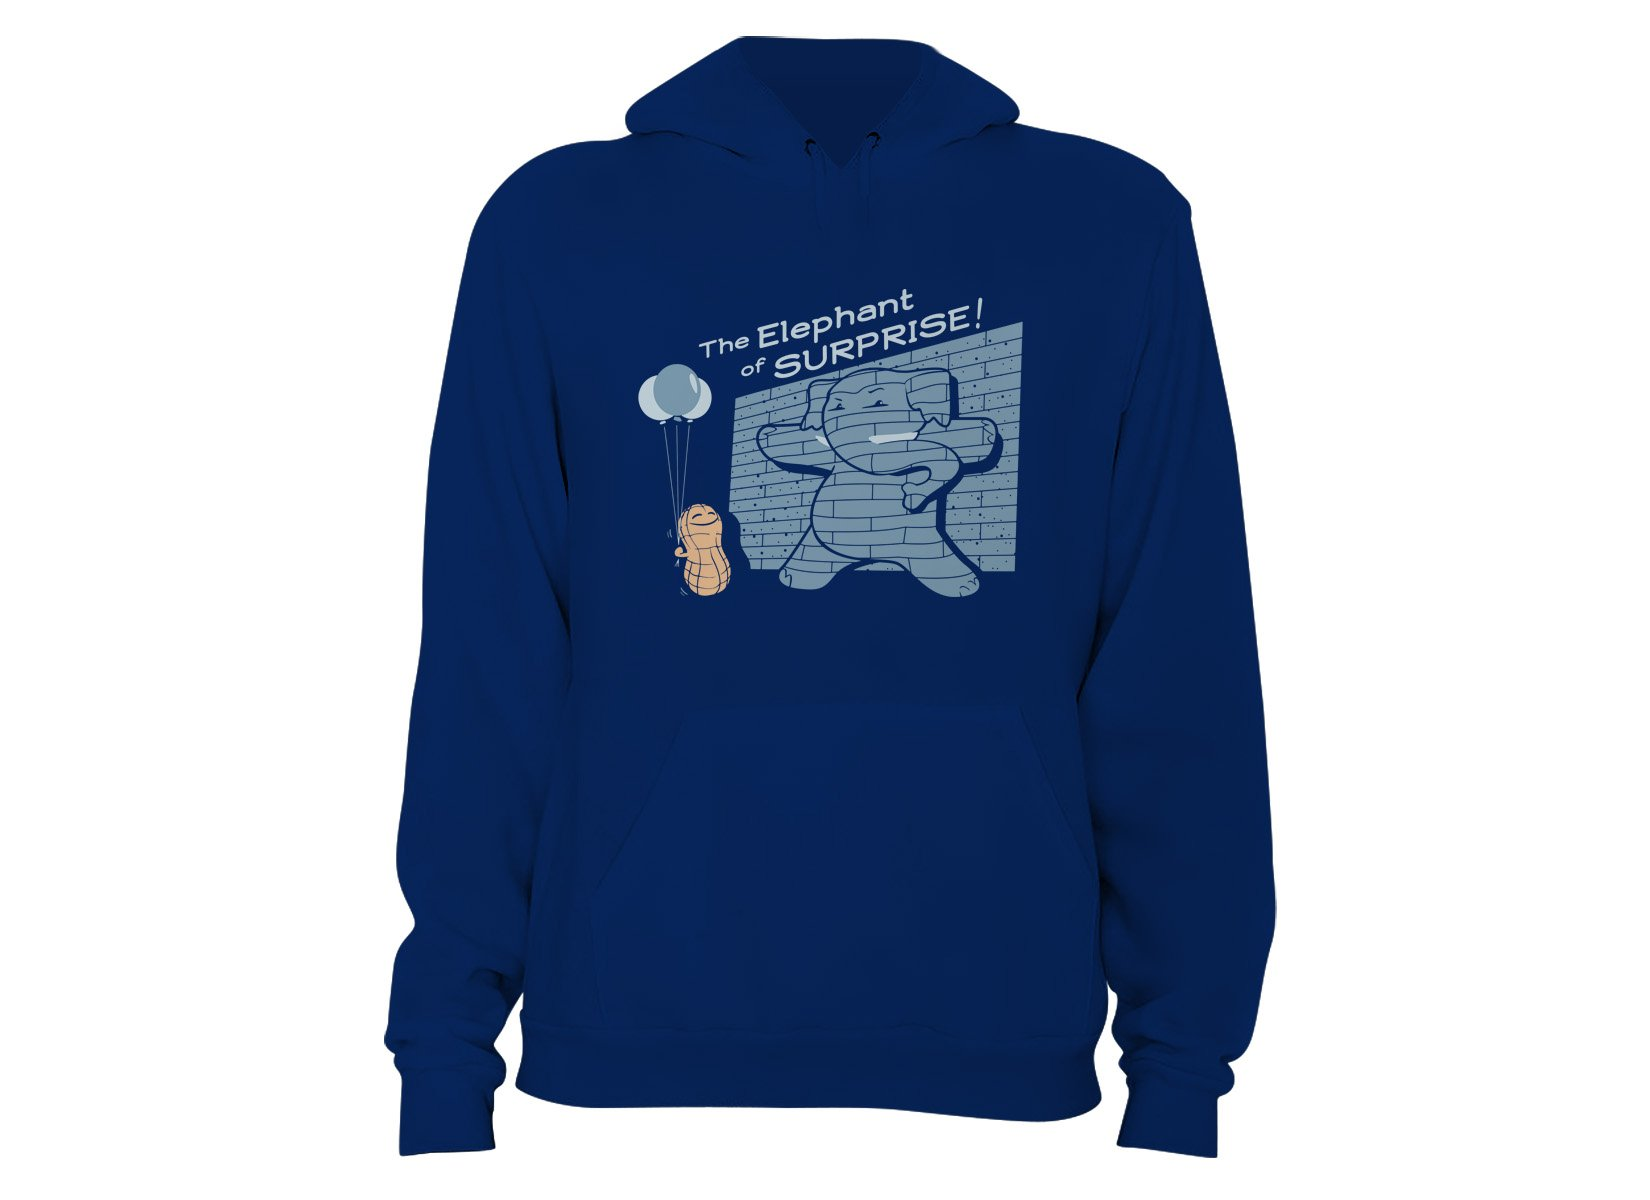 The Elephant of Surprise! on Hoodie